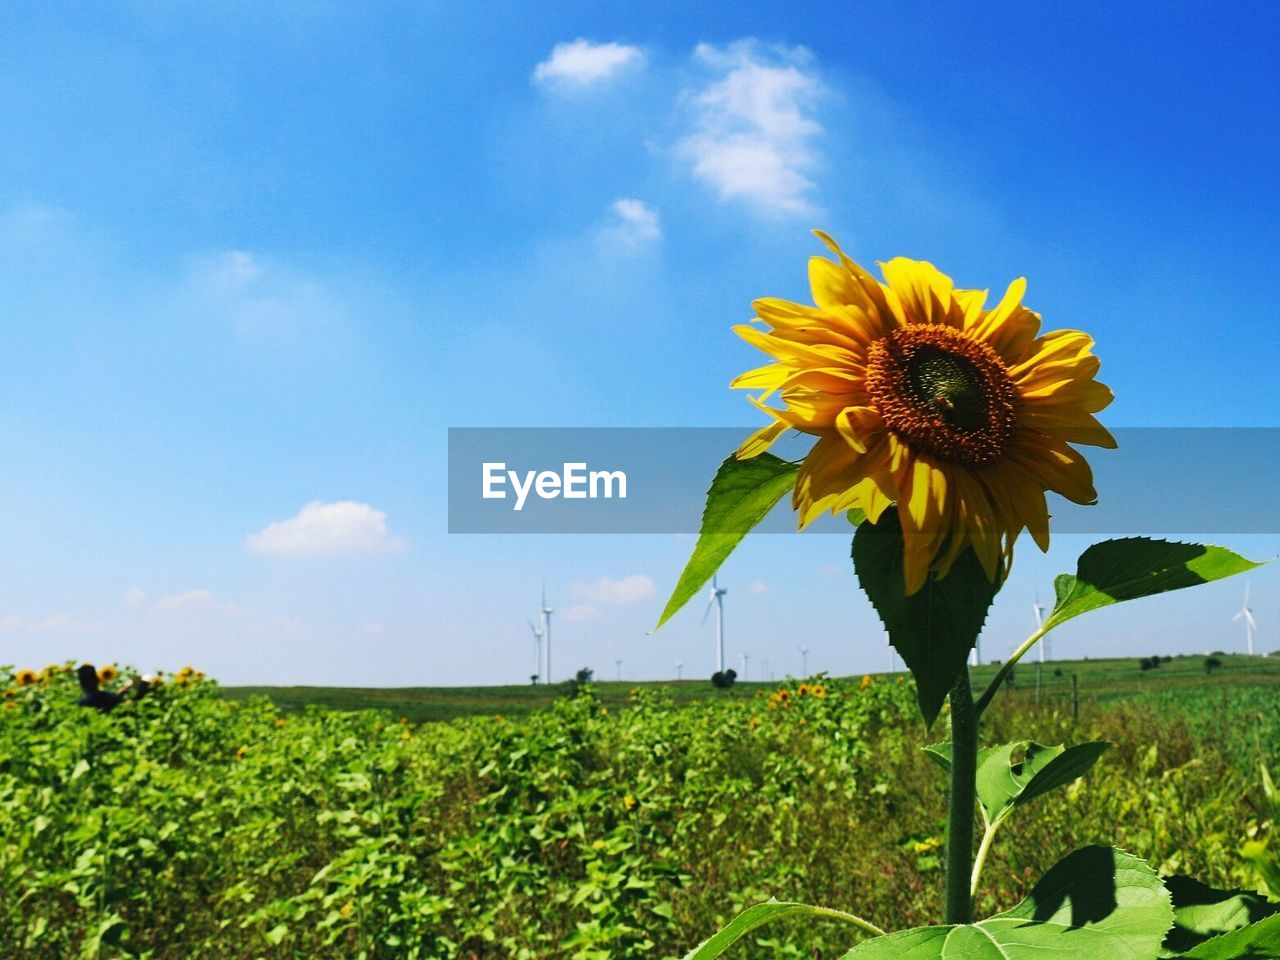 flower, field, growth, nature, beauty in nature, plant, freshness, yellow, sky, sunflower, fragility, day, no people, outdoors, landscape, petal, flower head, rural scene, green color, tranquility, leaf, blooming, close-up, grass, scenics